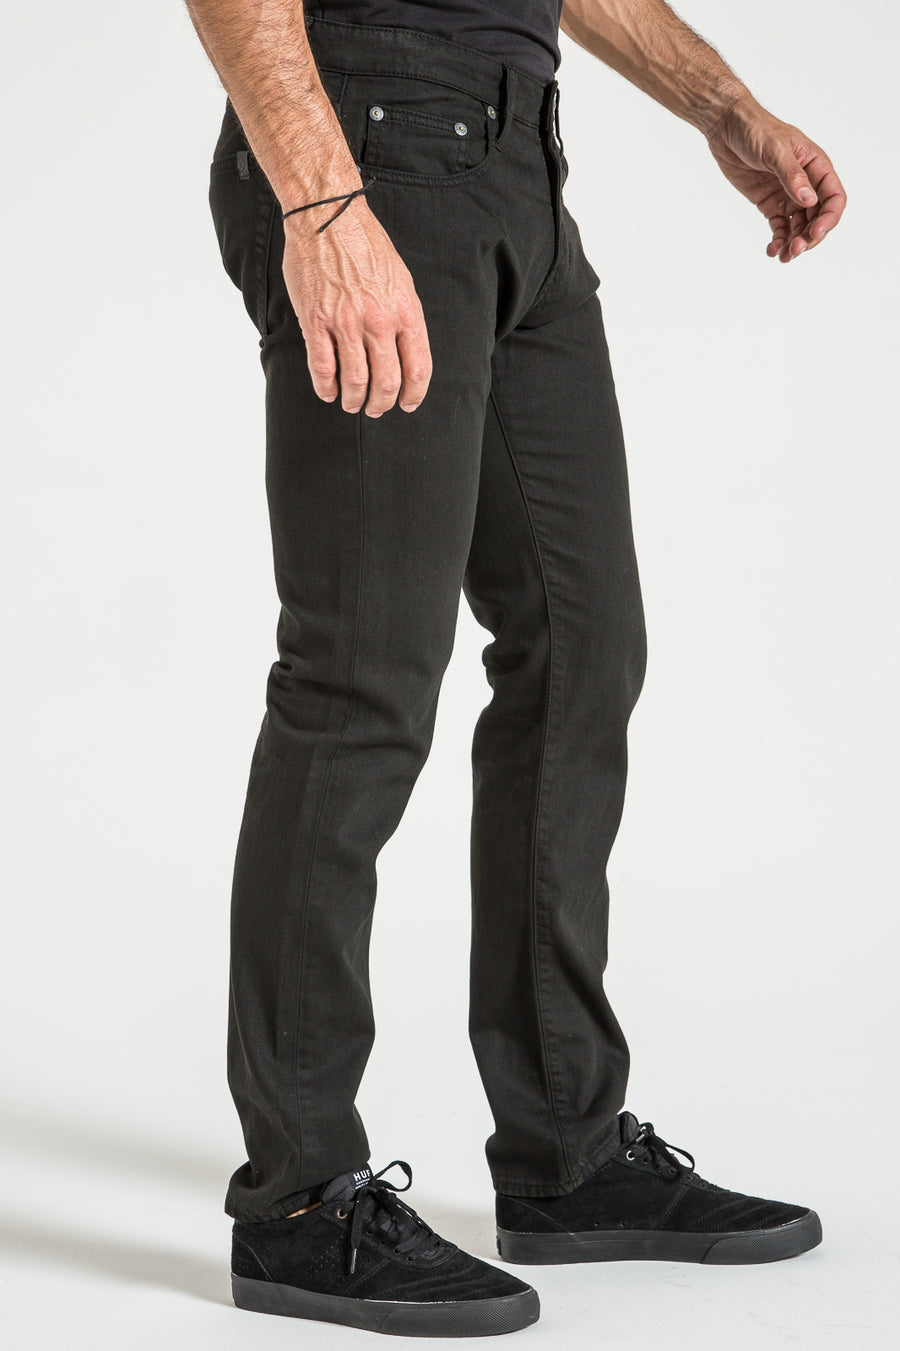 BARFLY SLIM IN BLACK TWILL